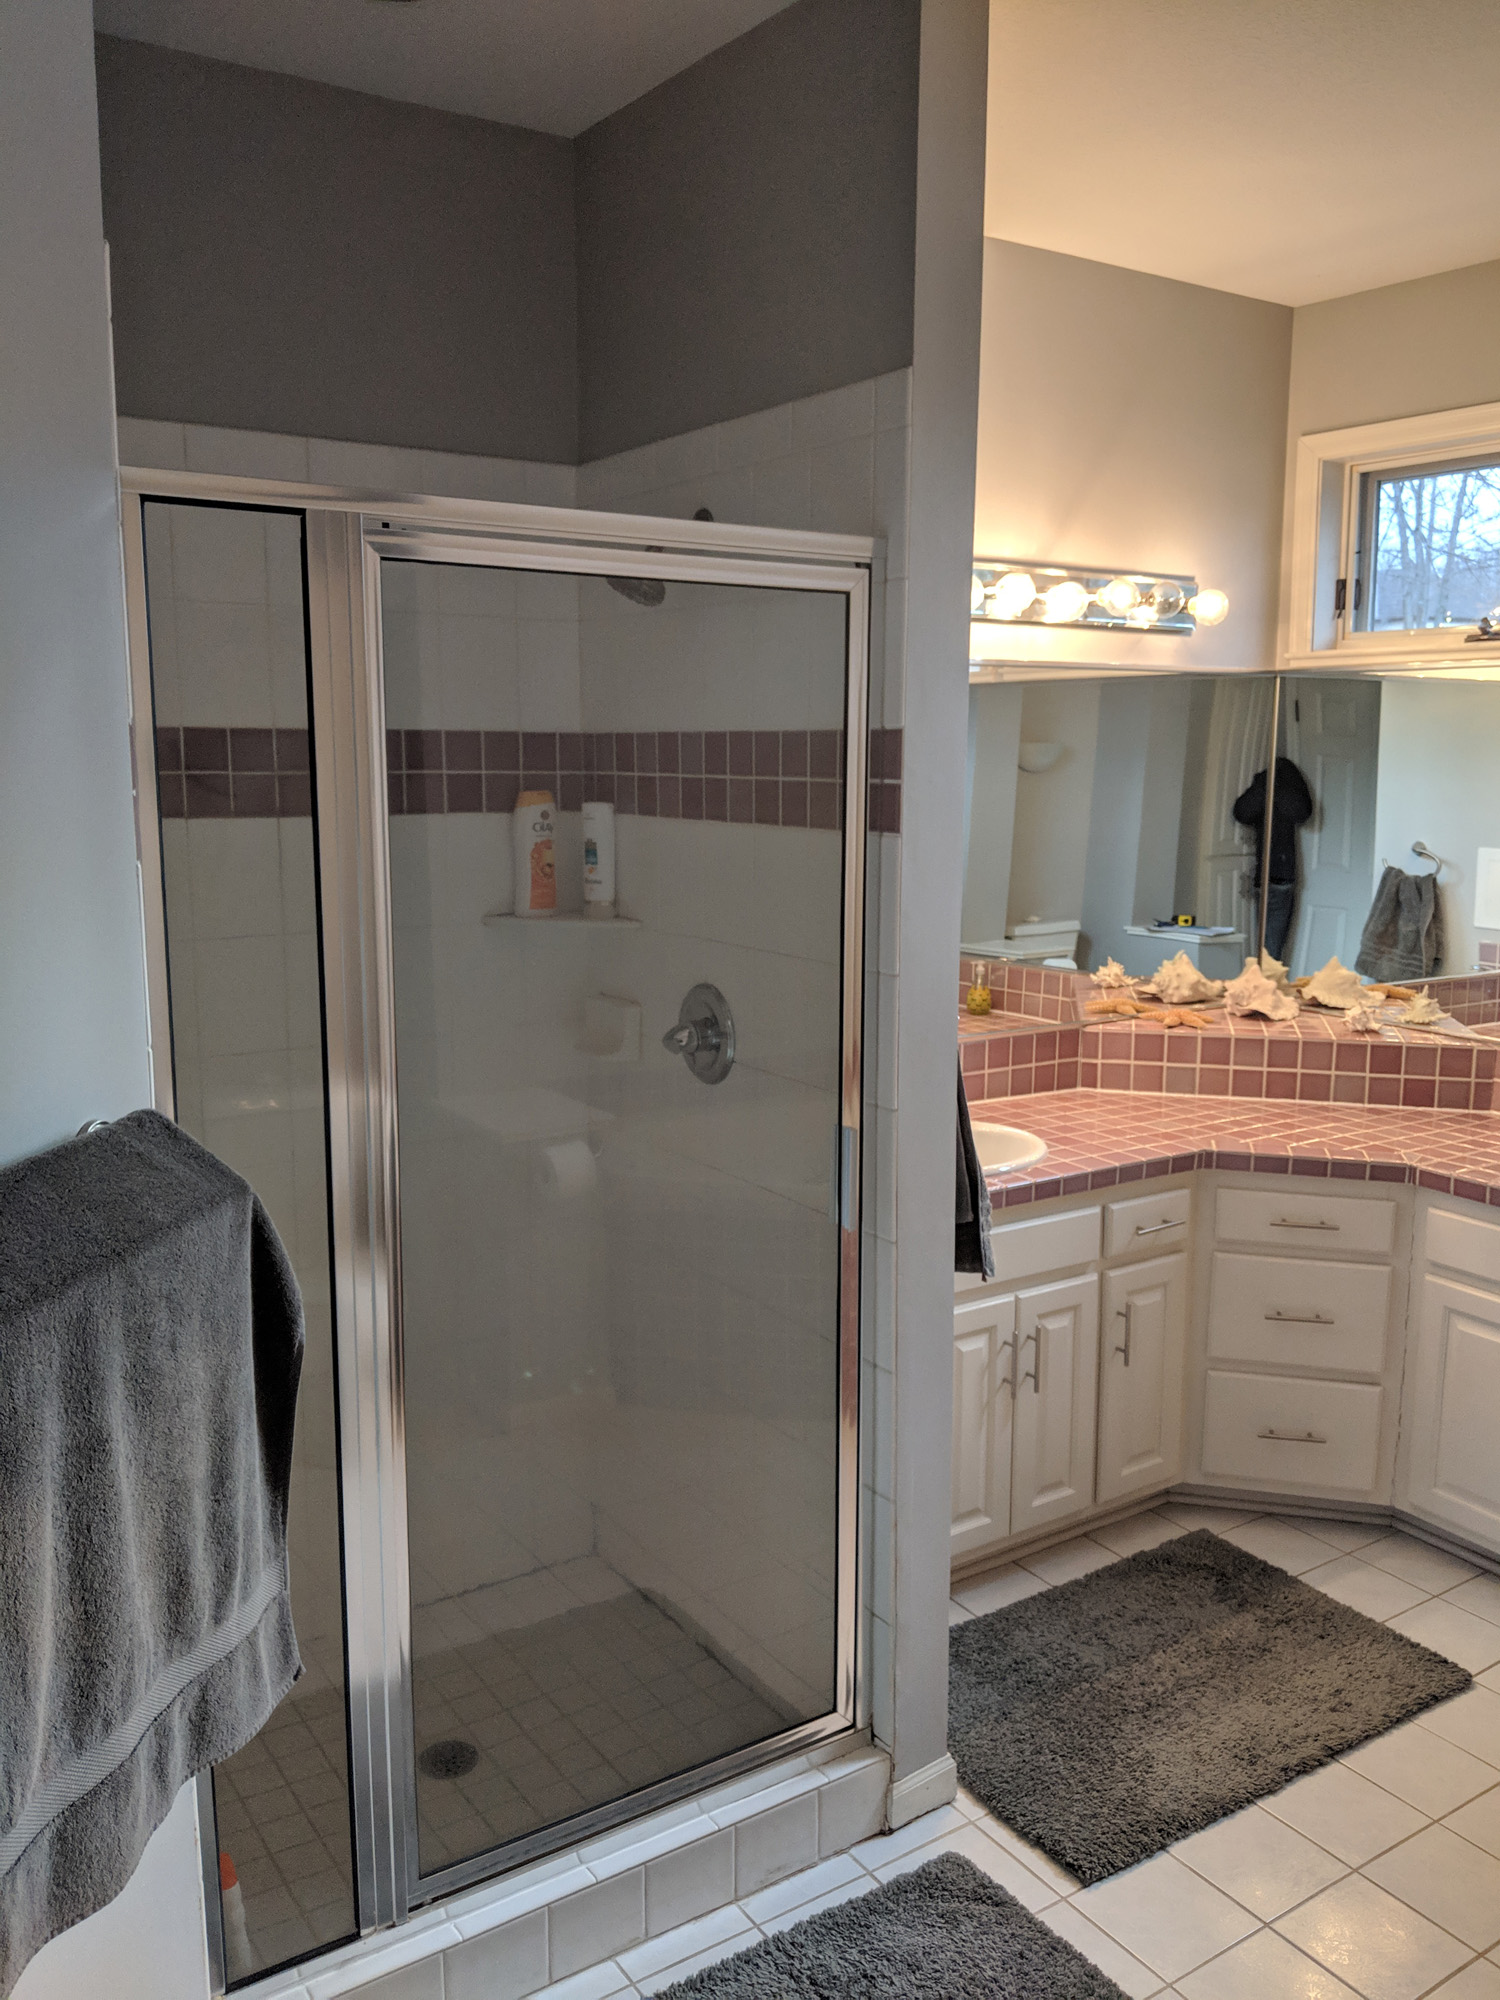 basic glass shower enclosure to be replaced with fancy glass corner shower